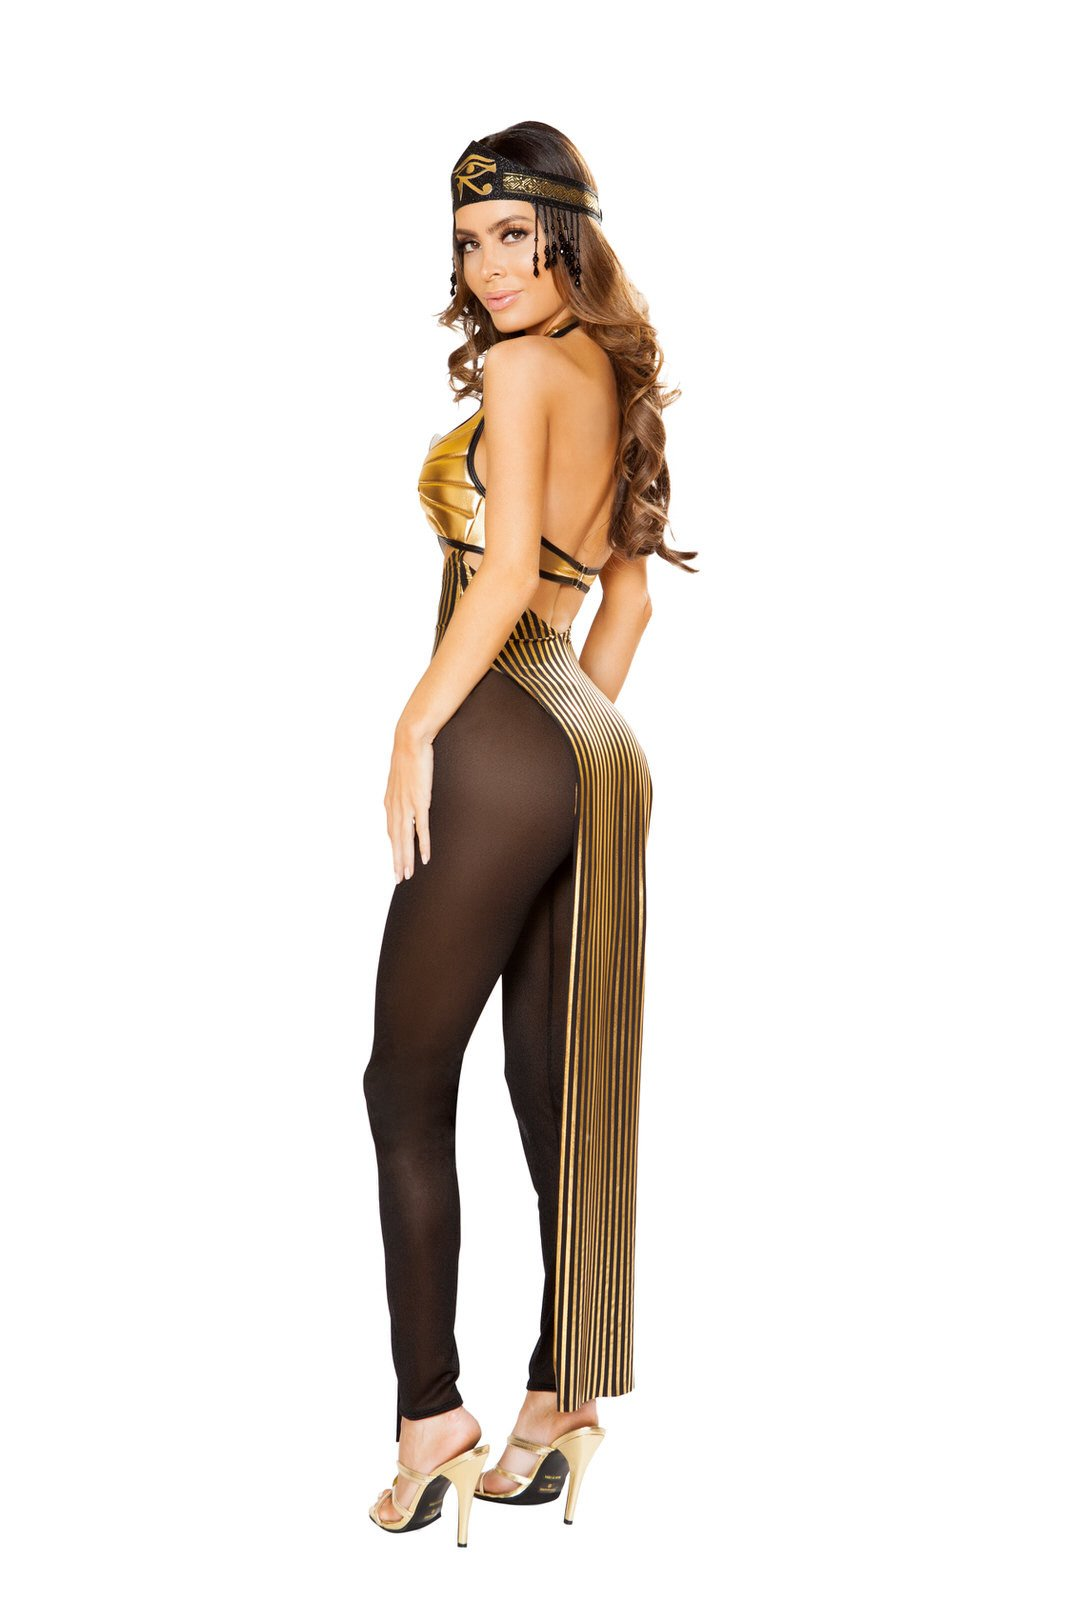 10114 - Confidential Society 3pc Cleopatra Costume